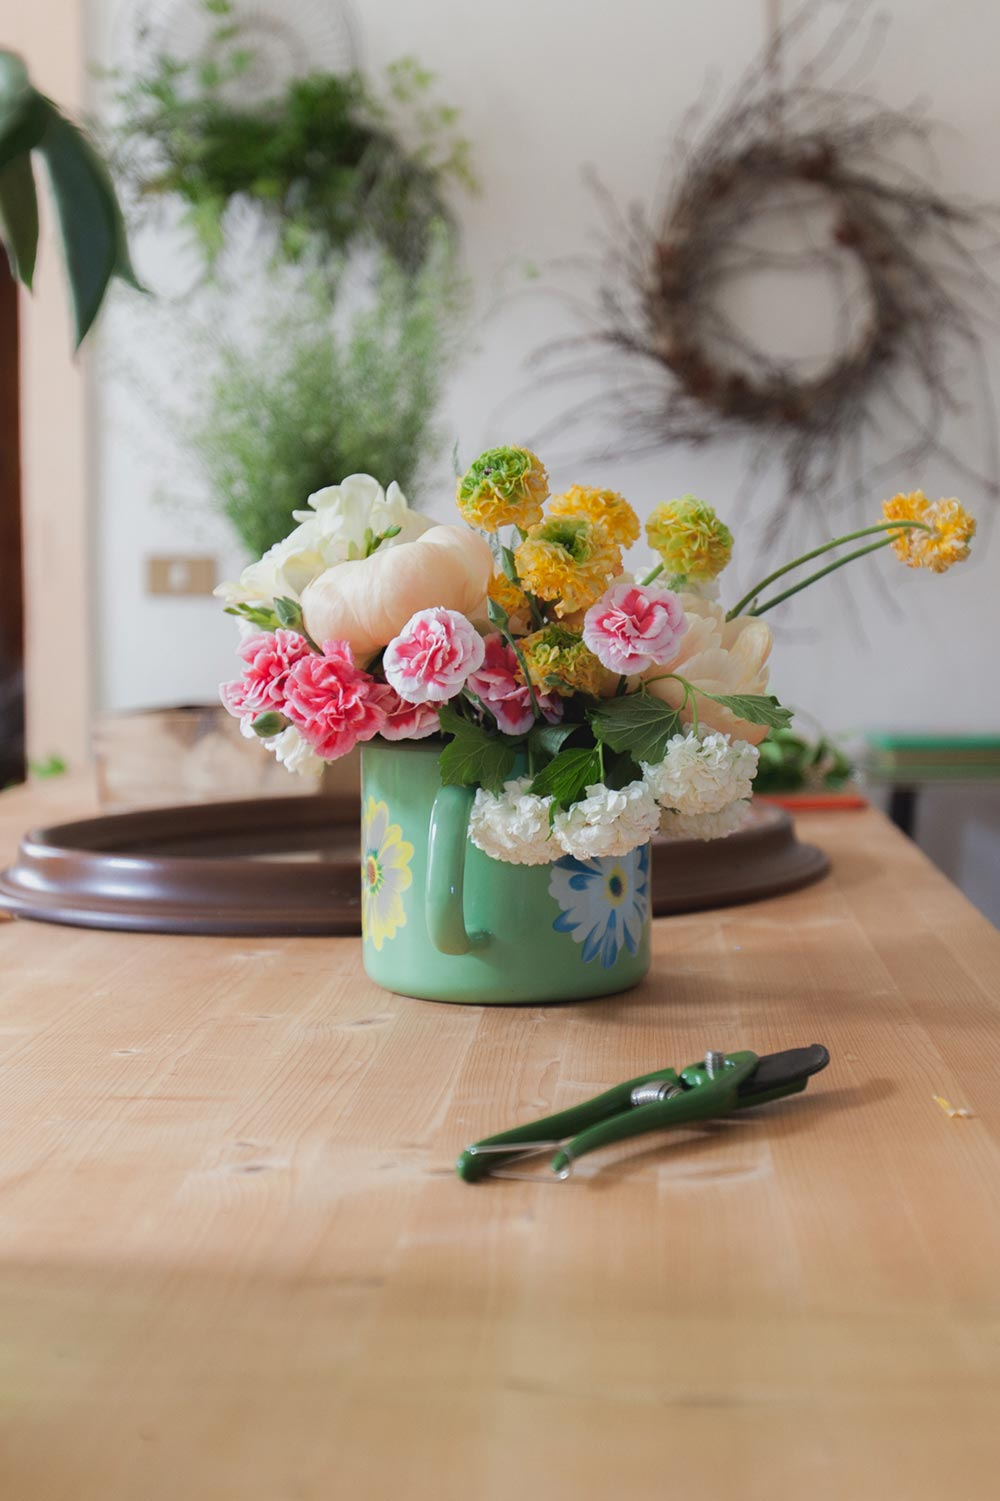 Freelancing Stories: On Freelancing As A Floral Designer with Margherita of Daisy Studio